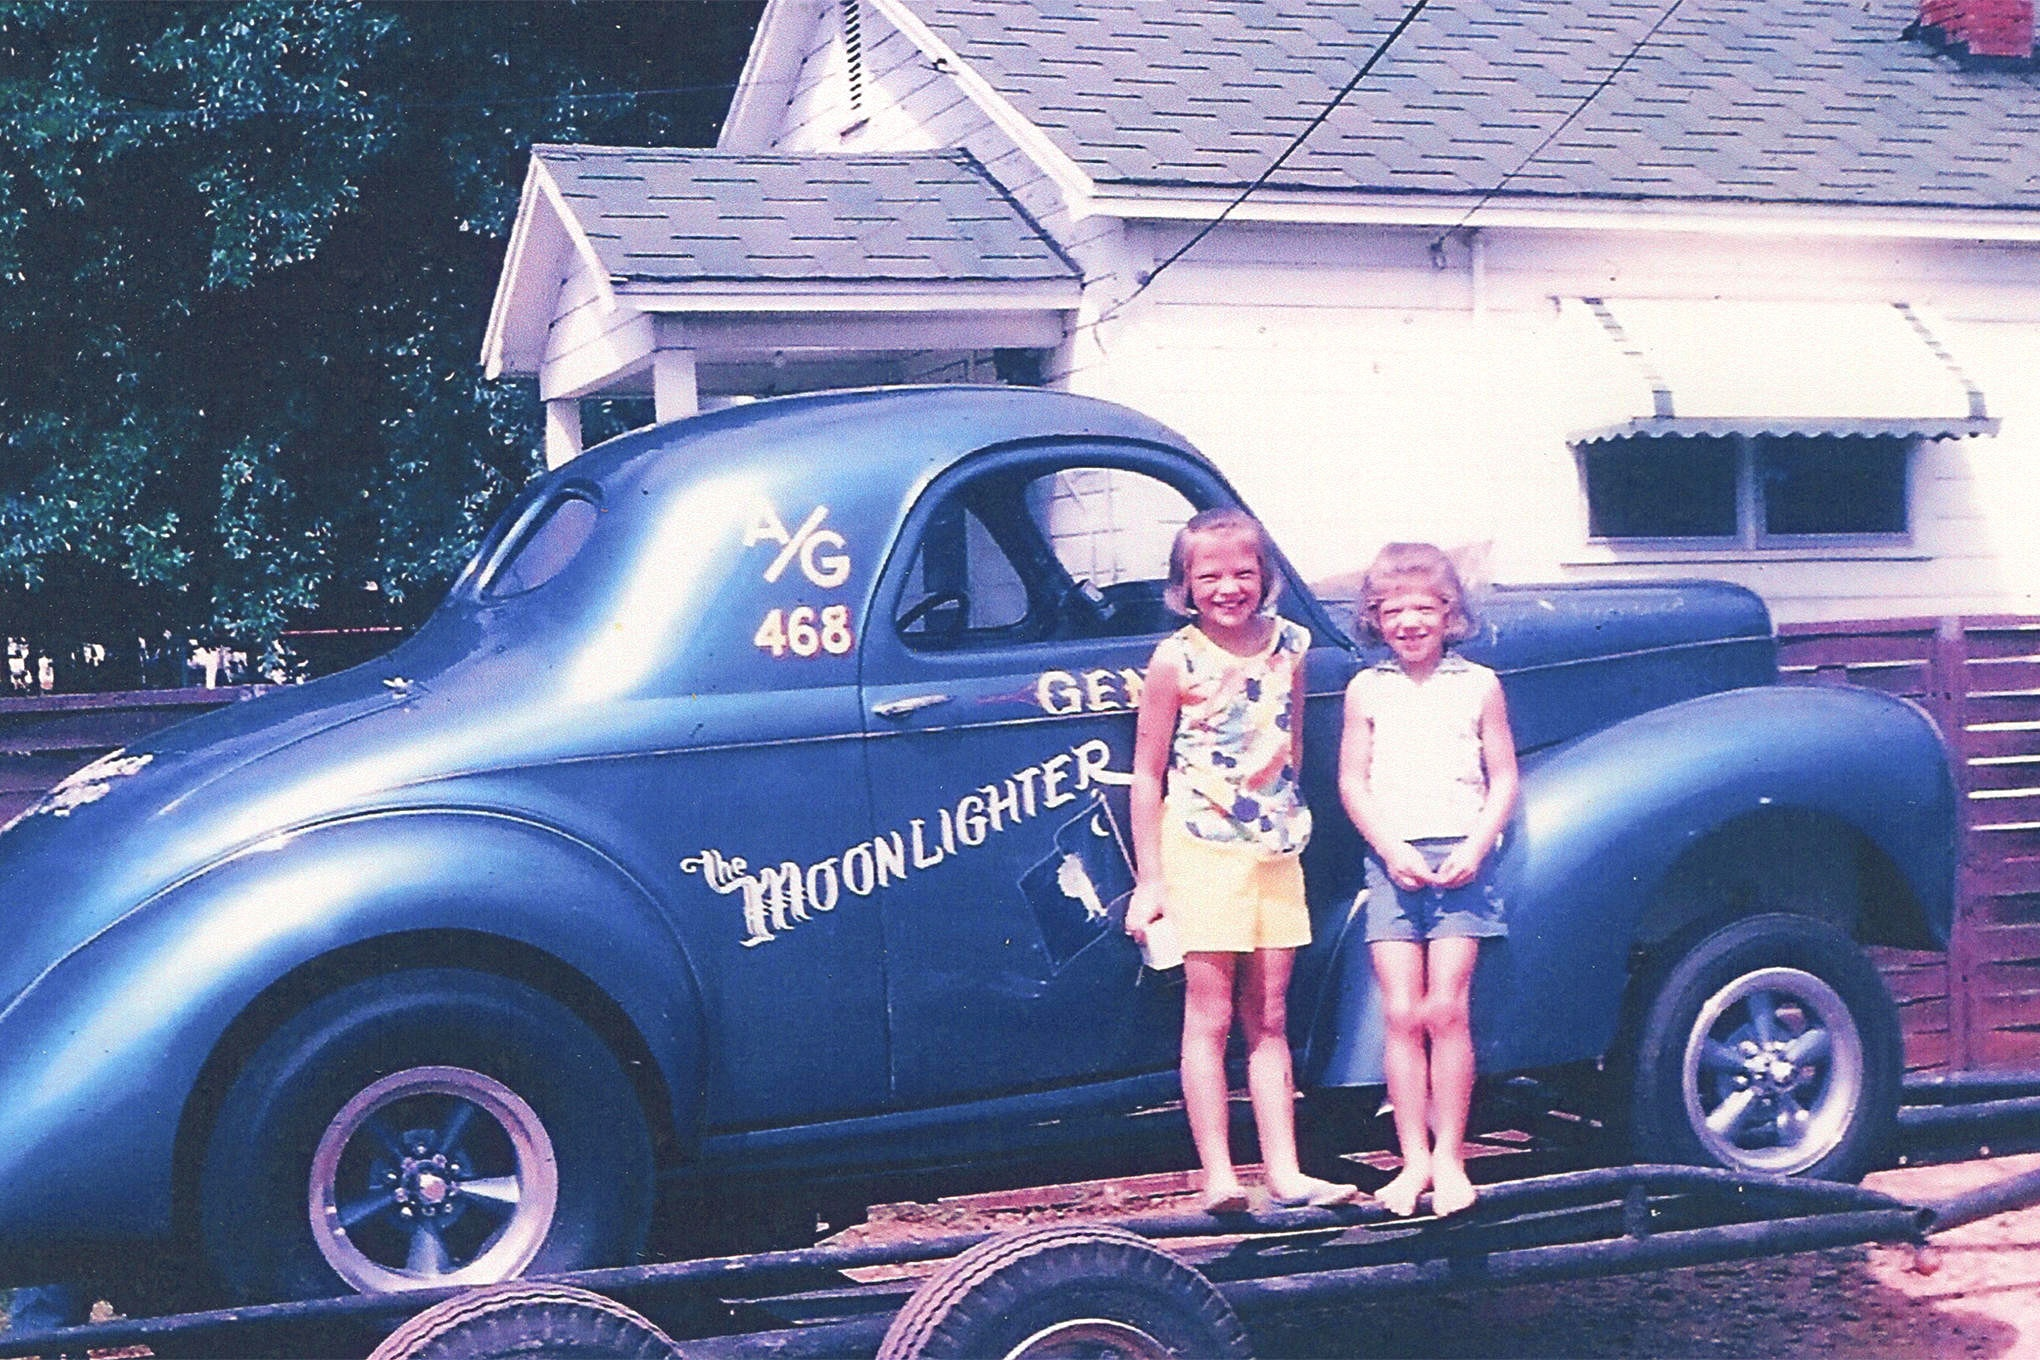 Gene and his wife Ruth traveled quite a bit in the 1960's, and they took their two daughters, Julie and Robin with them. These two drag racing kids have grown up since this 1965 photograph, but they still travel with their parents to many of the Southeast Gasser events.